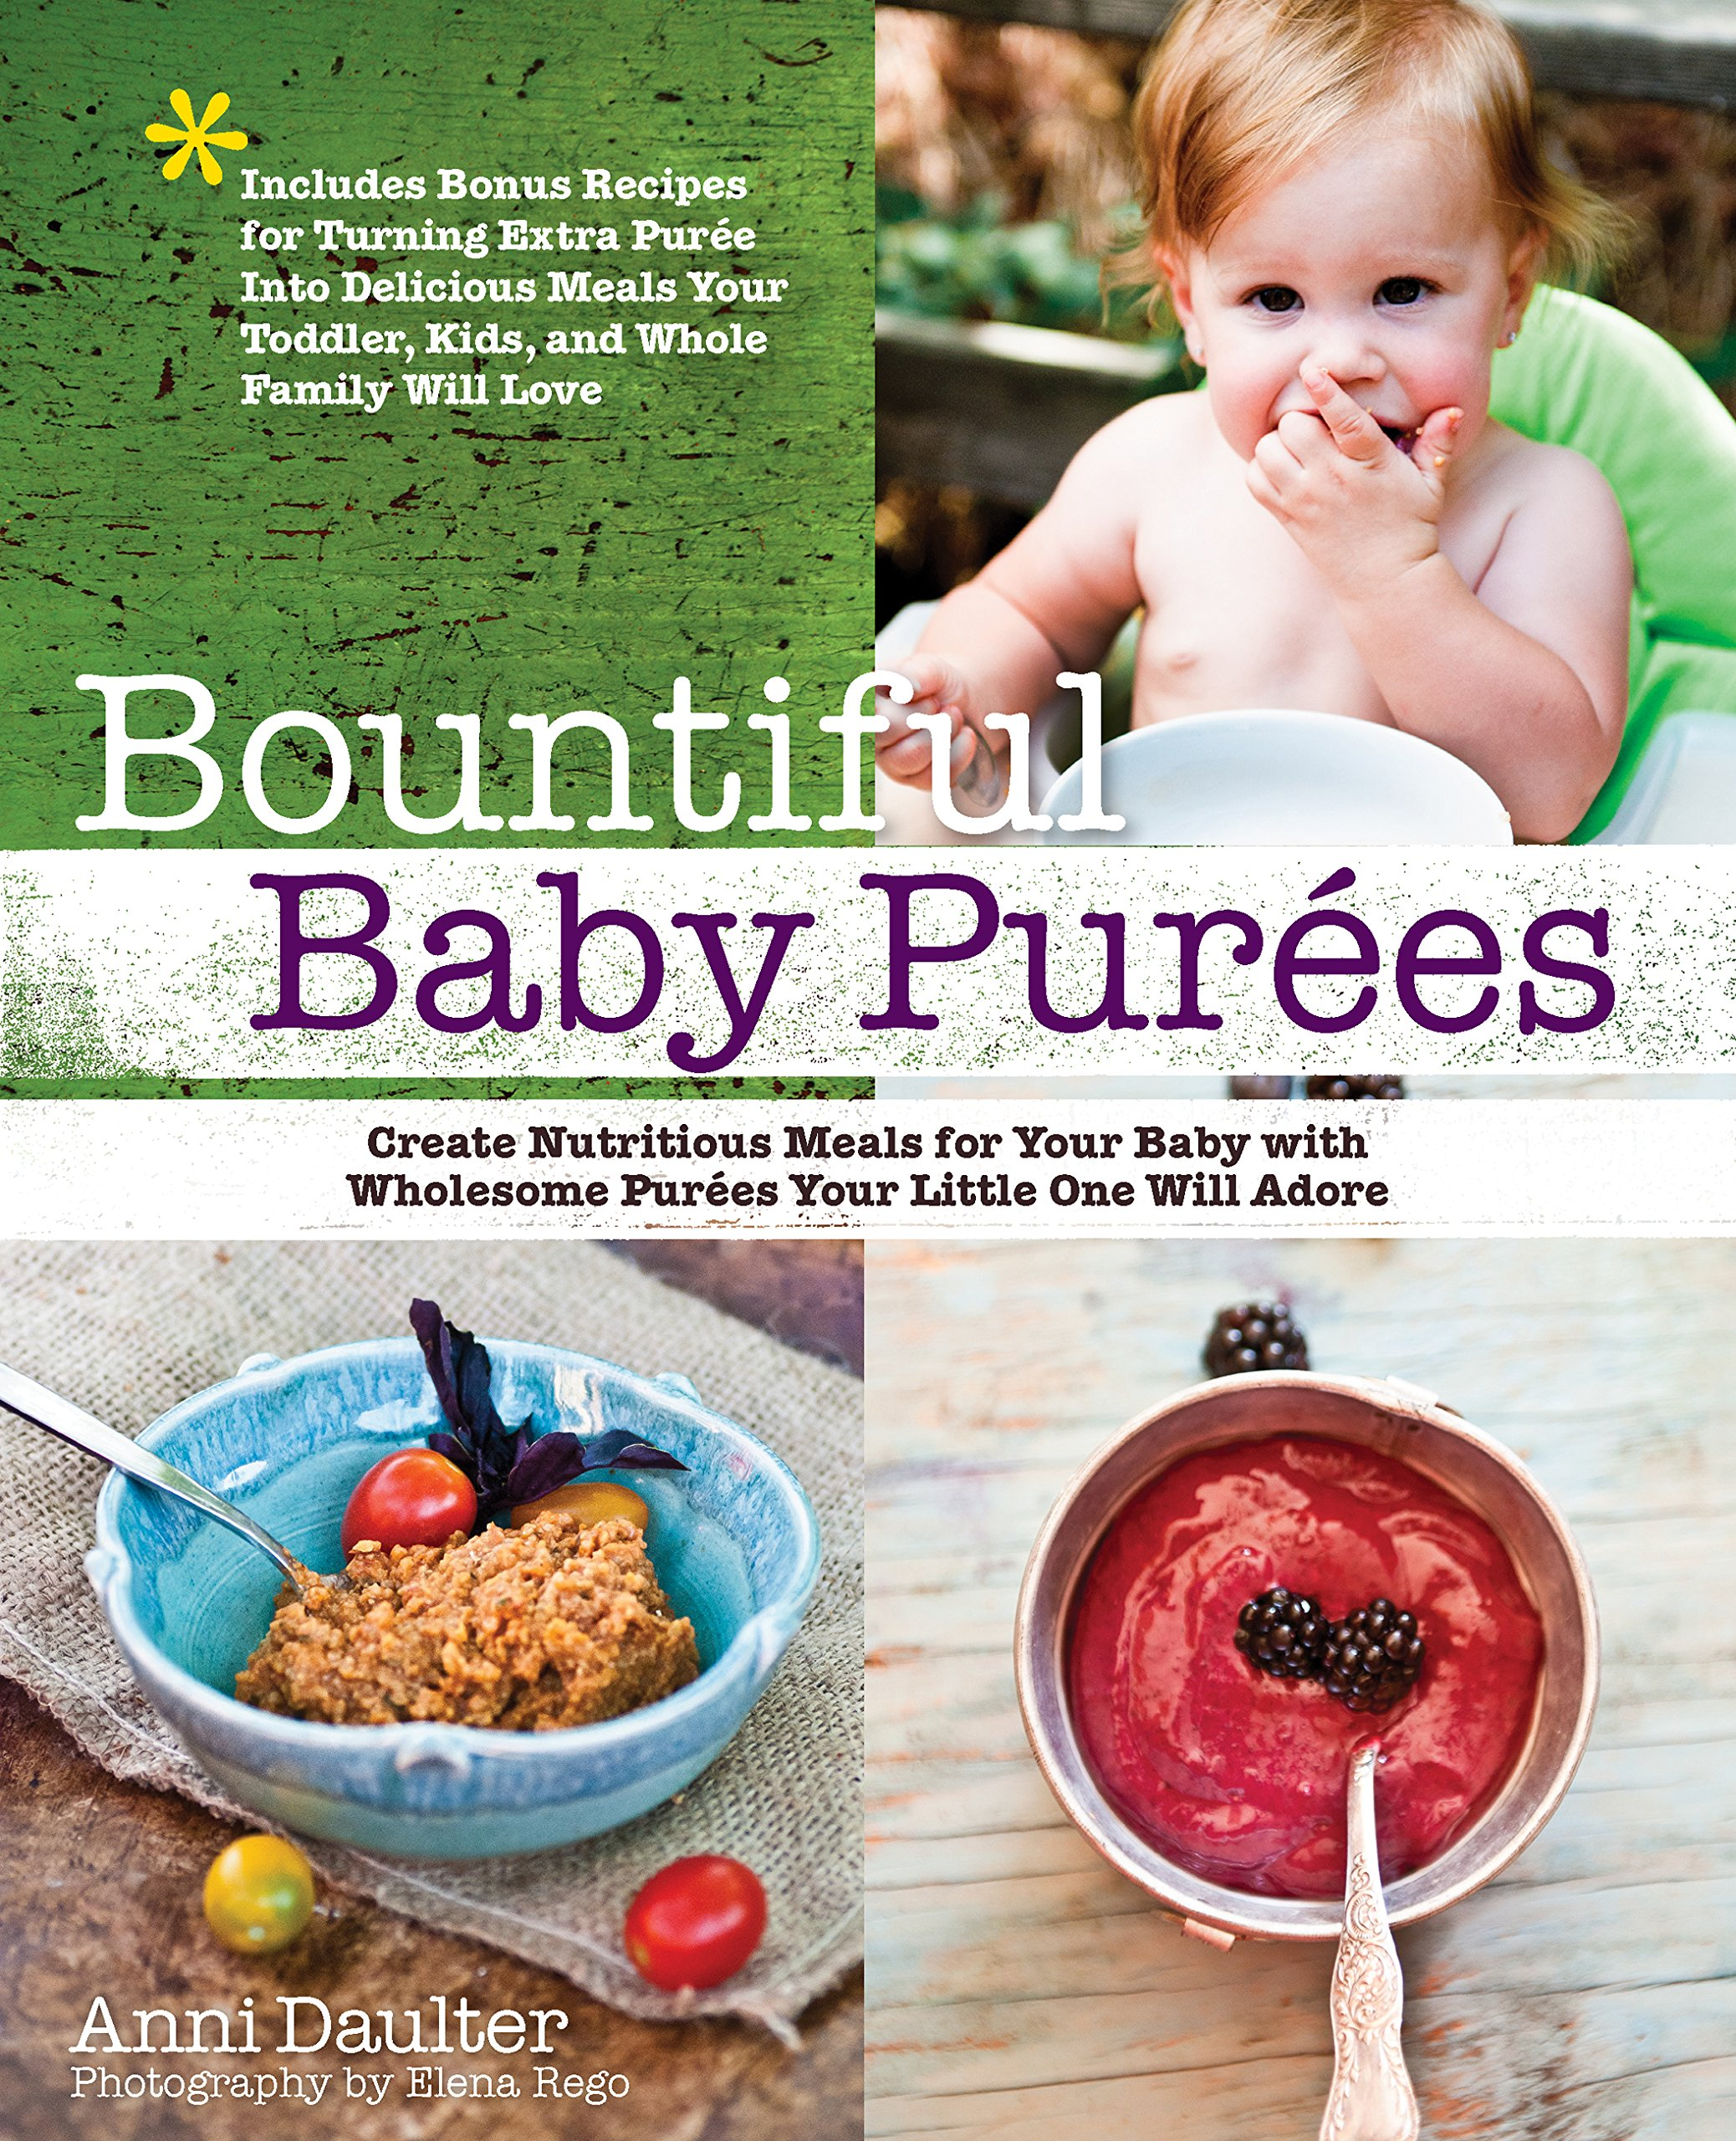 Read Online Bountiful Baby Purees: Create Nutritious Meals for Your Baby with Wholesome Purees Your Little One Will Adore-Includes Bonus Recipes for Turning Extra ... Toddler, Kids, and Whole Family Will Love PDF